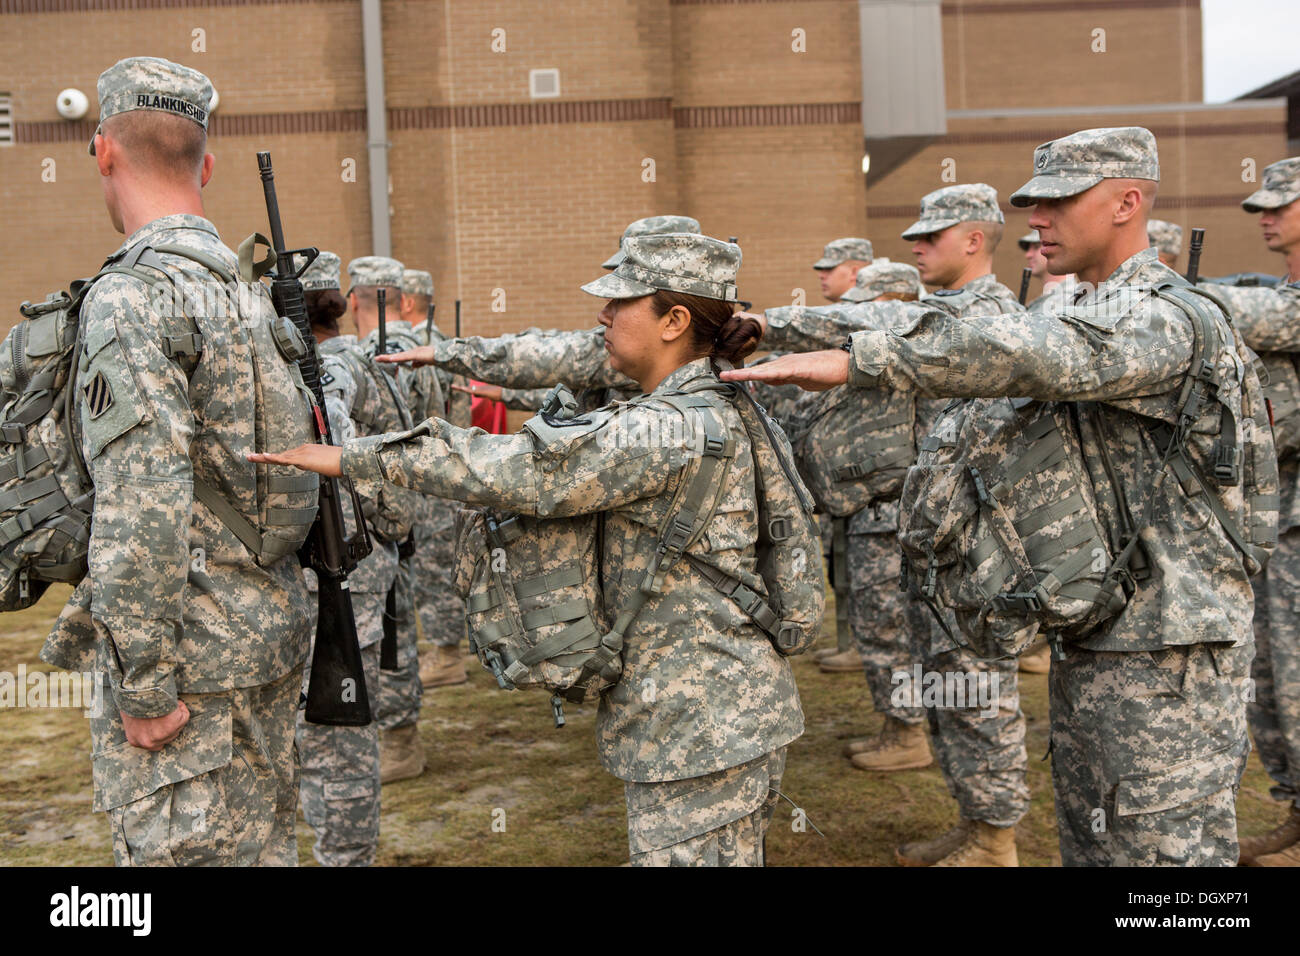 Women Drill Sergeant candidates at the US Army Drill Instructors Stock Photo: 62053797 ...